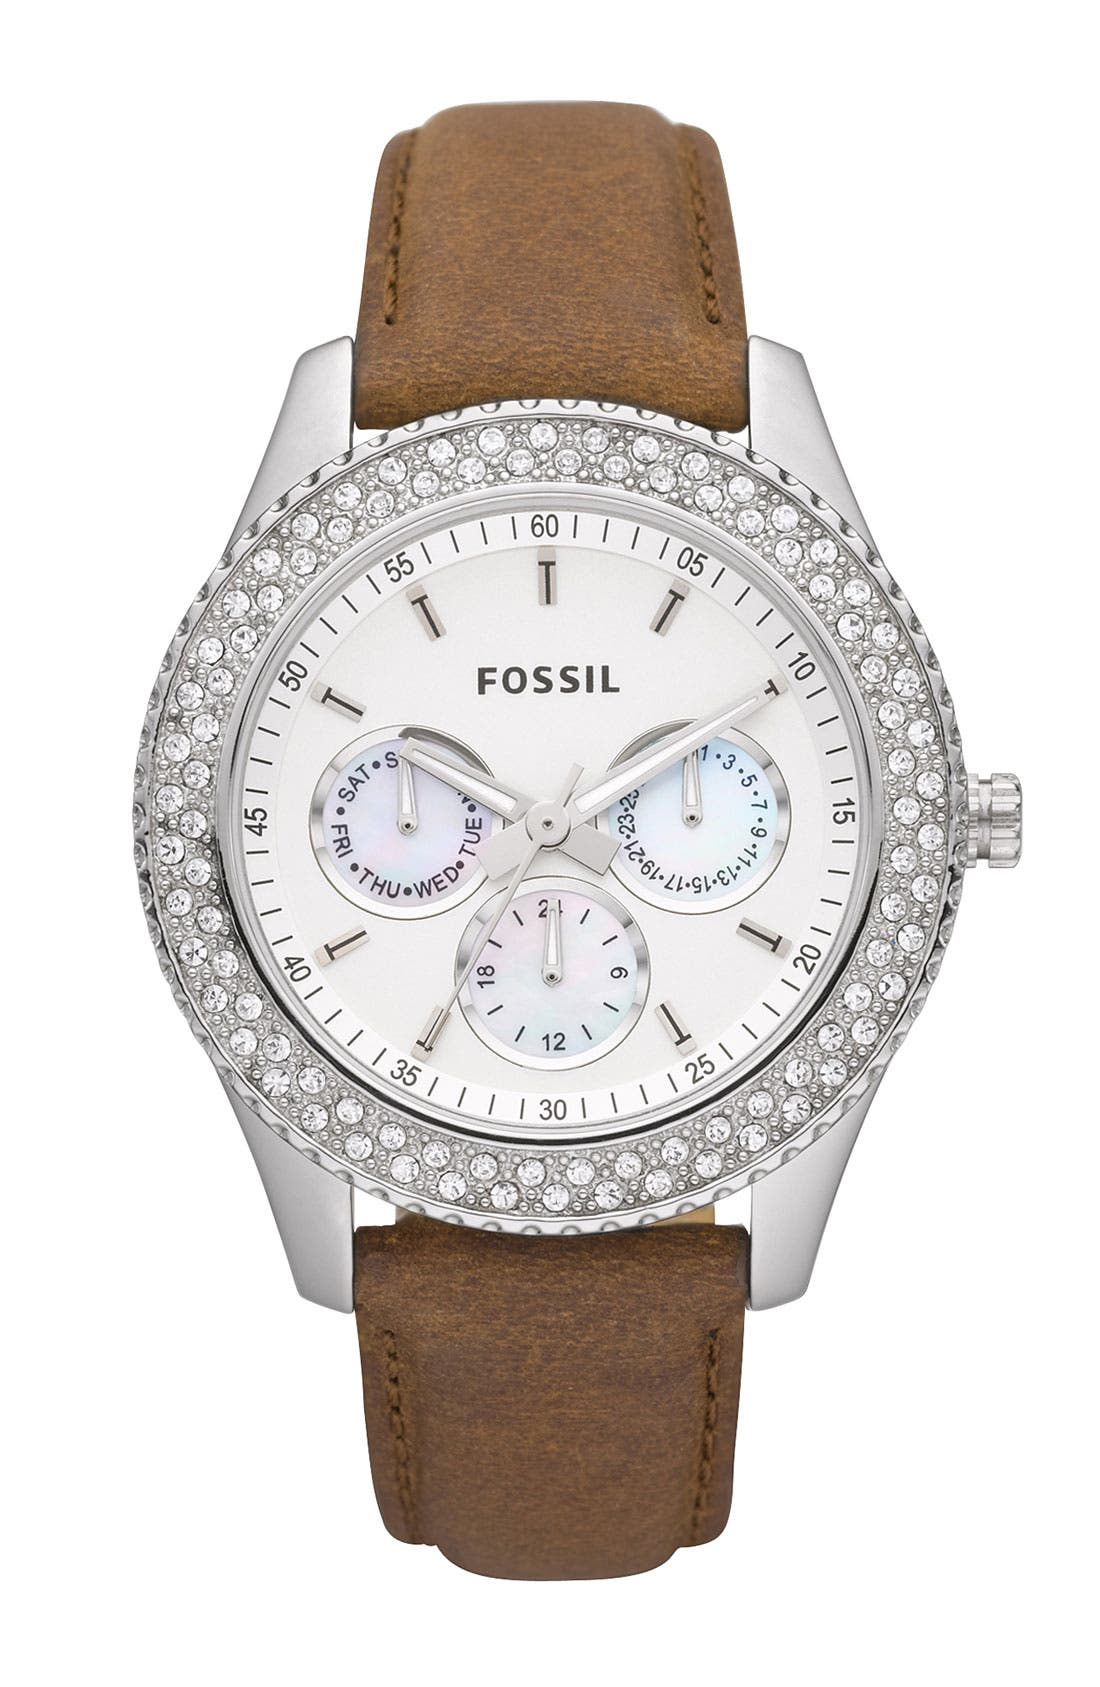 Main Image - Fossil 'Stella' Crystal Topring Multifunction Watch, 37mm